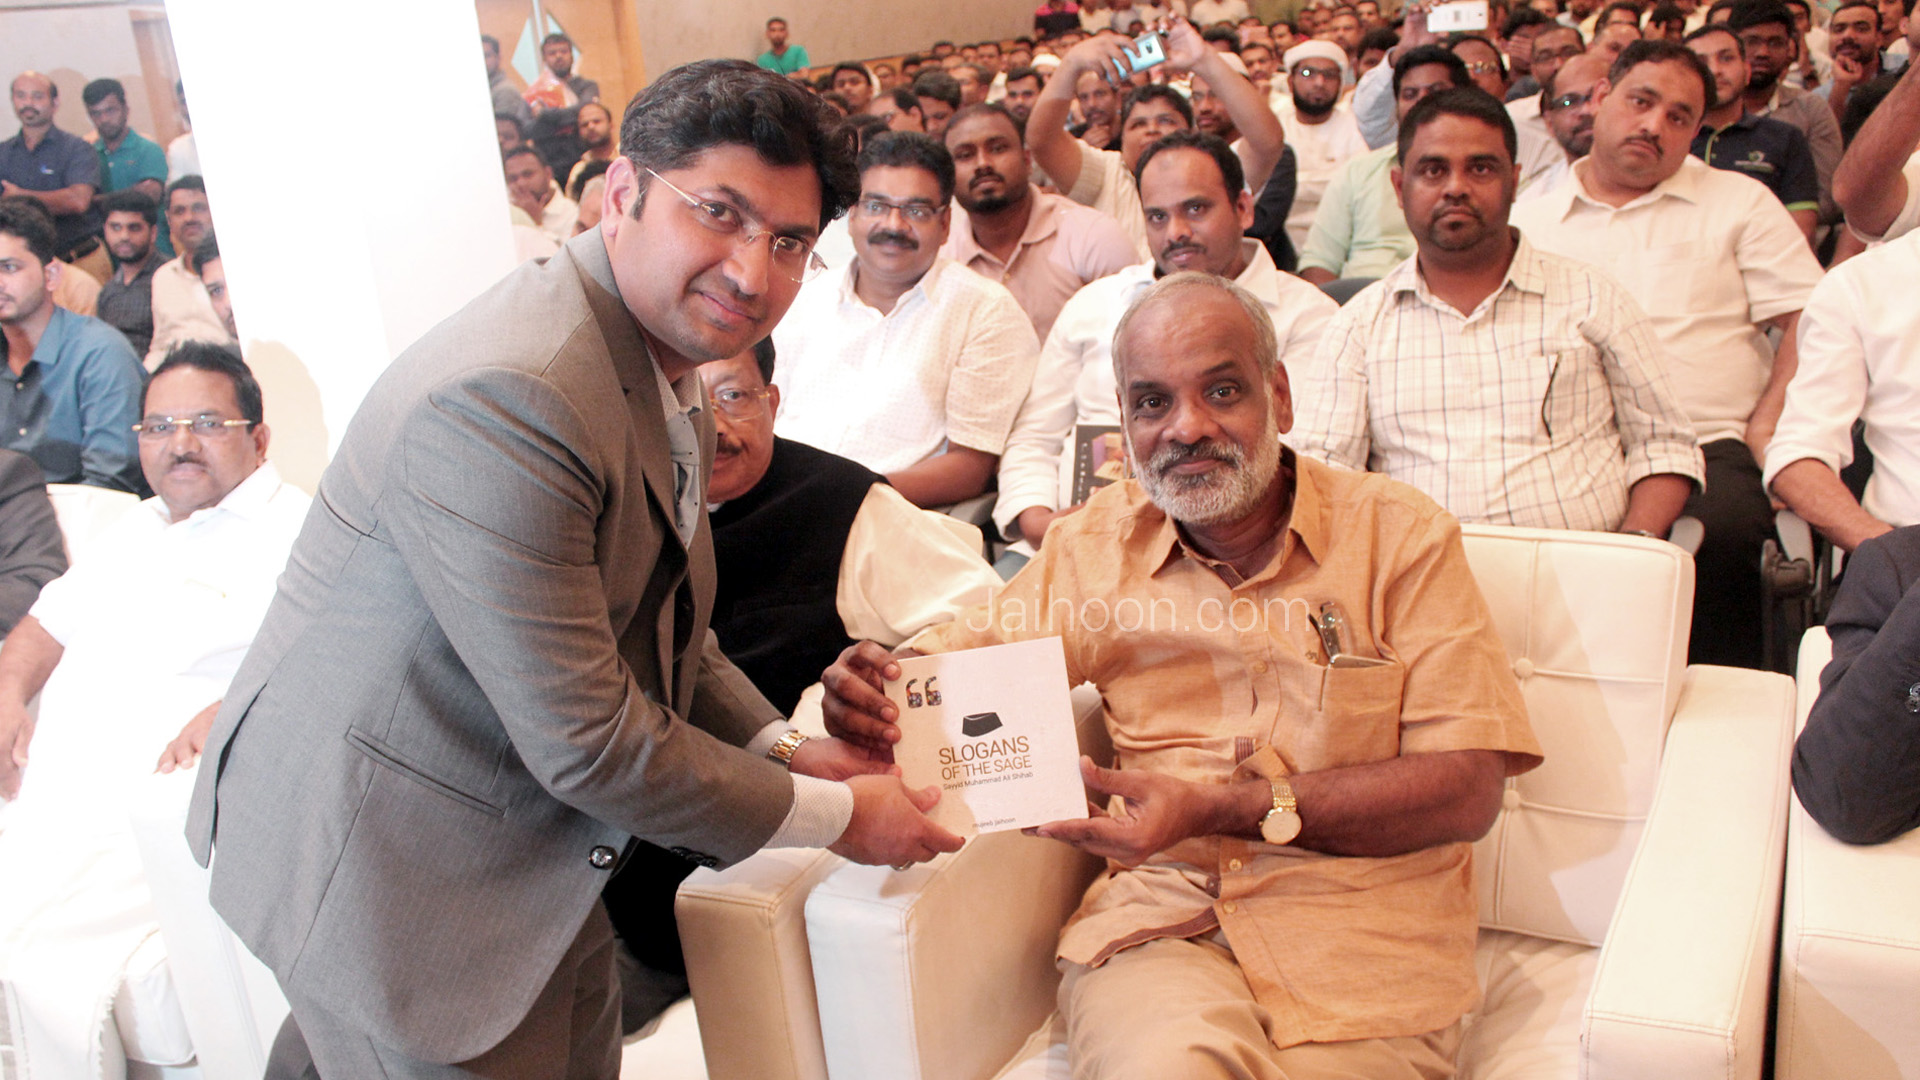 Presenting a copy of the book, Slogans of the Sage, to P. Surendran, award-winning Malayalam writer